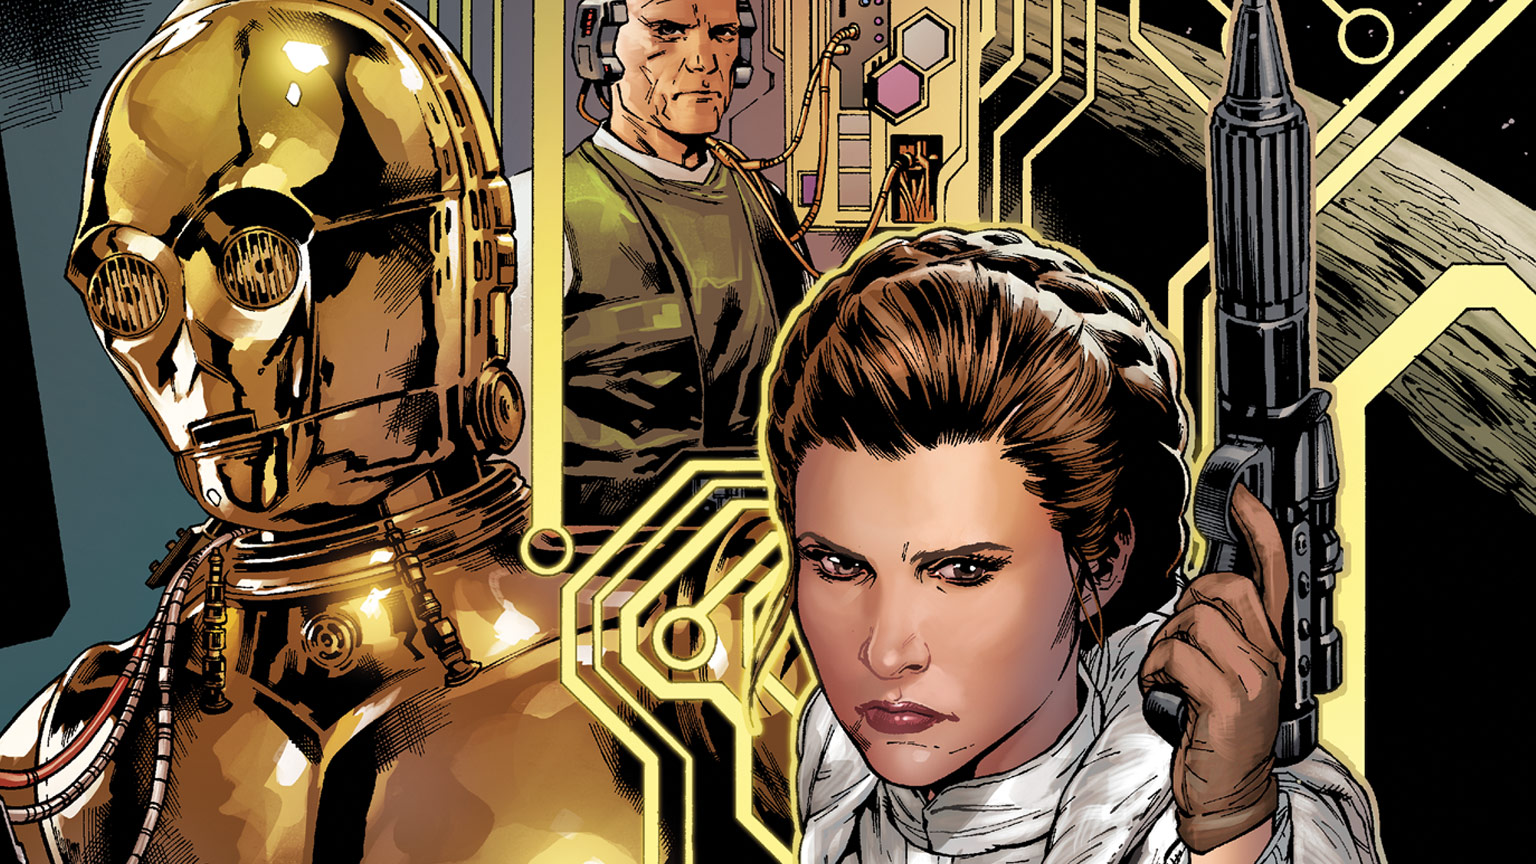 Star Wars #9 cover